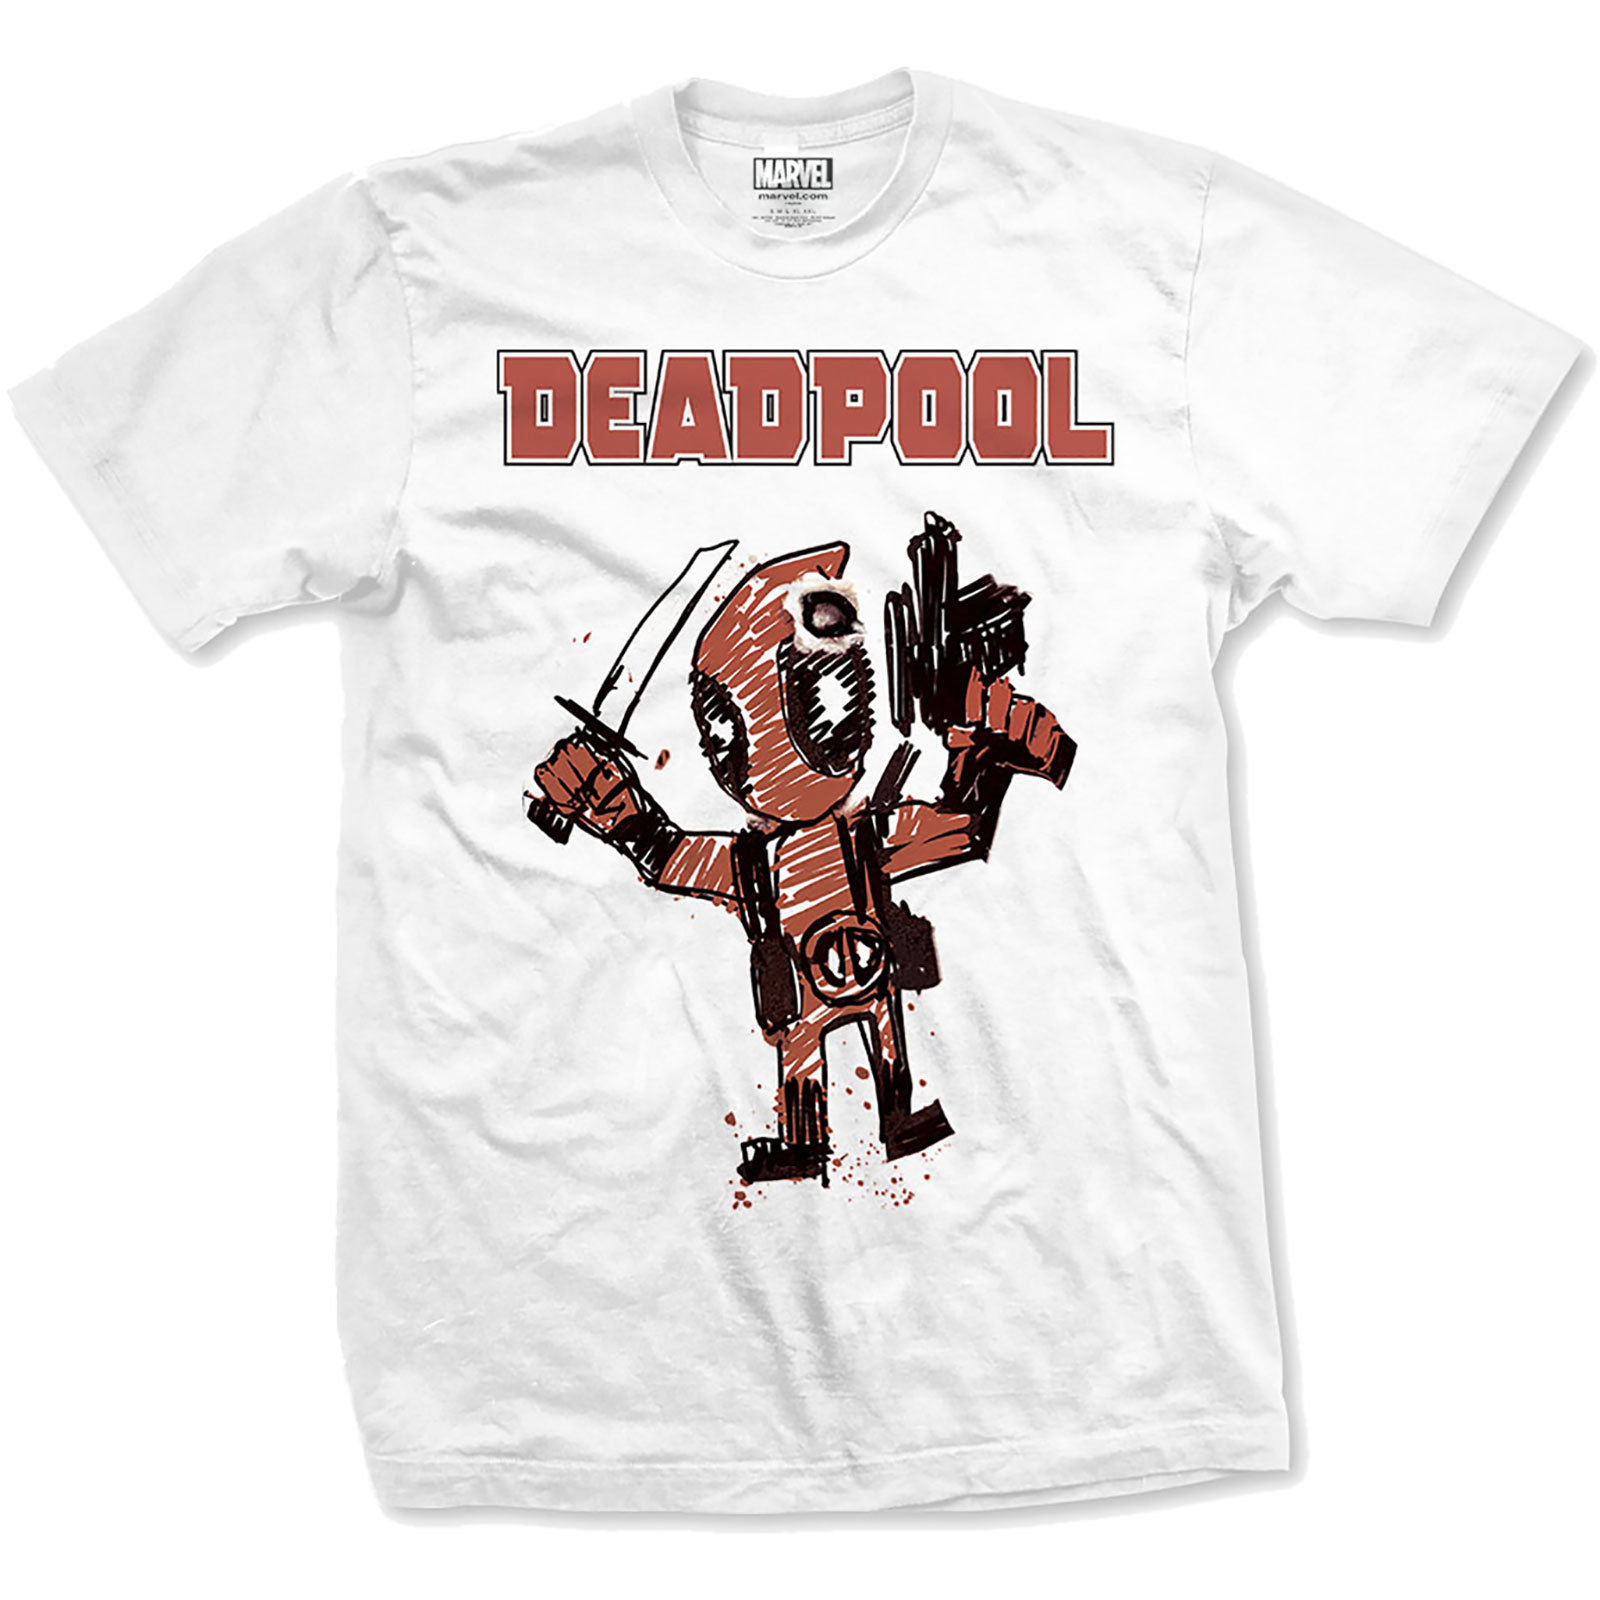 Deadpool Cartoon Bullet (Small) image